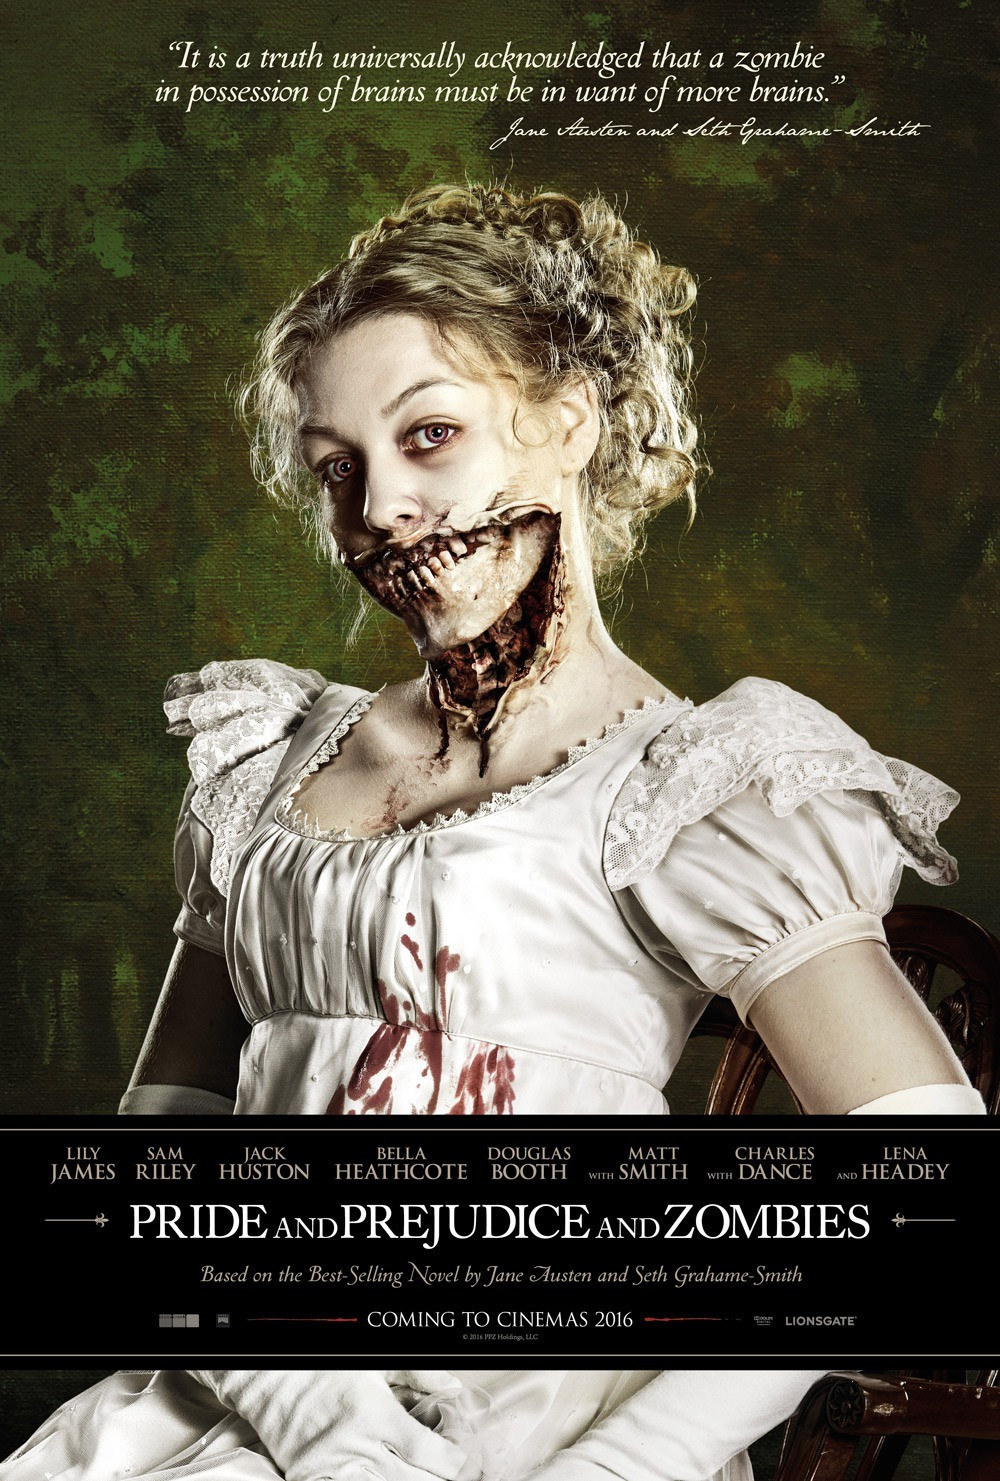 an analysis of pride and prejudice and zombies by seth grahame smith Pride and prejudice and zombies new hardcover book club edition of the 2009 quirk books trade publication note: this is a hardcover new, but with minor shelfwear.